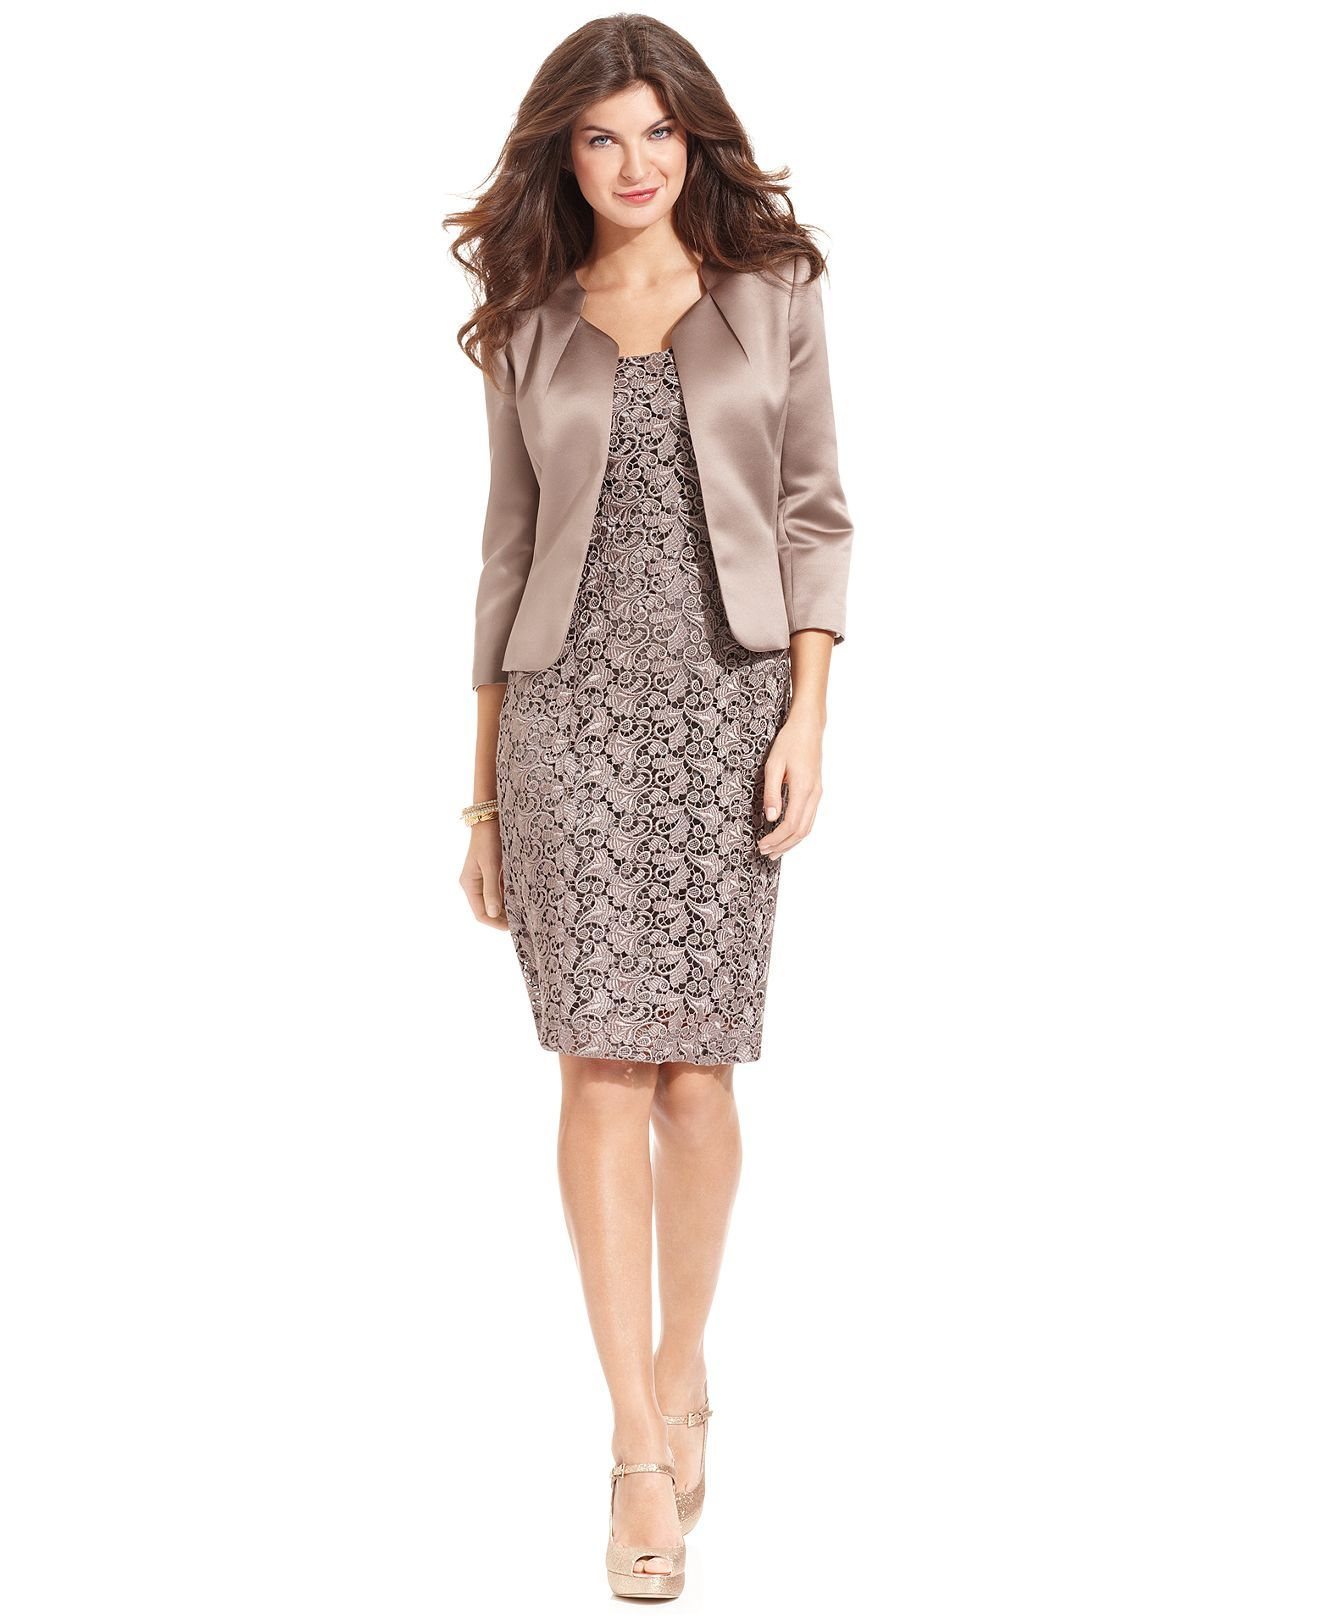 Tahari by ASL Suit, Satin Jacket & Lace Sheath Dress - - Macy's